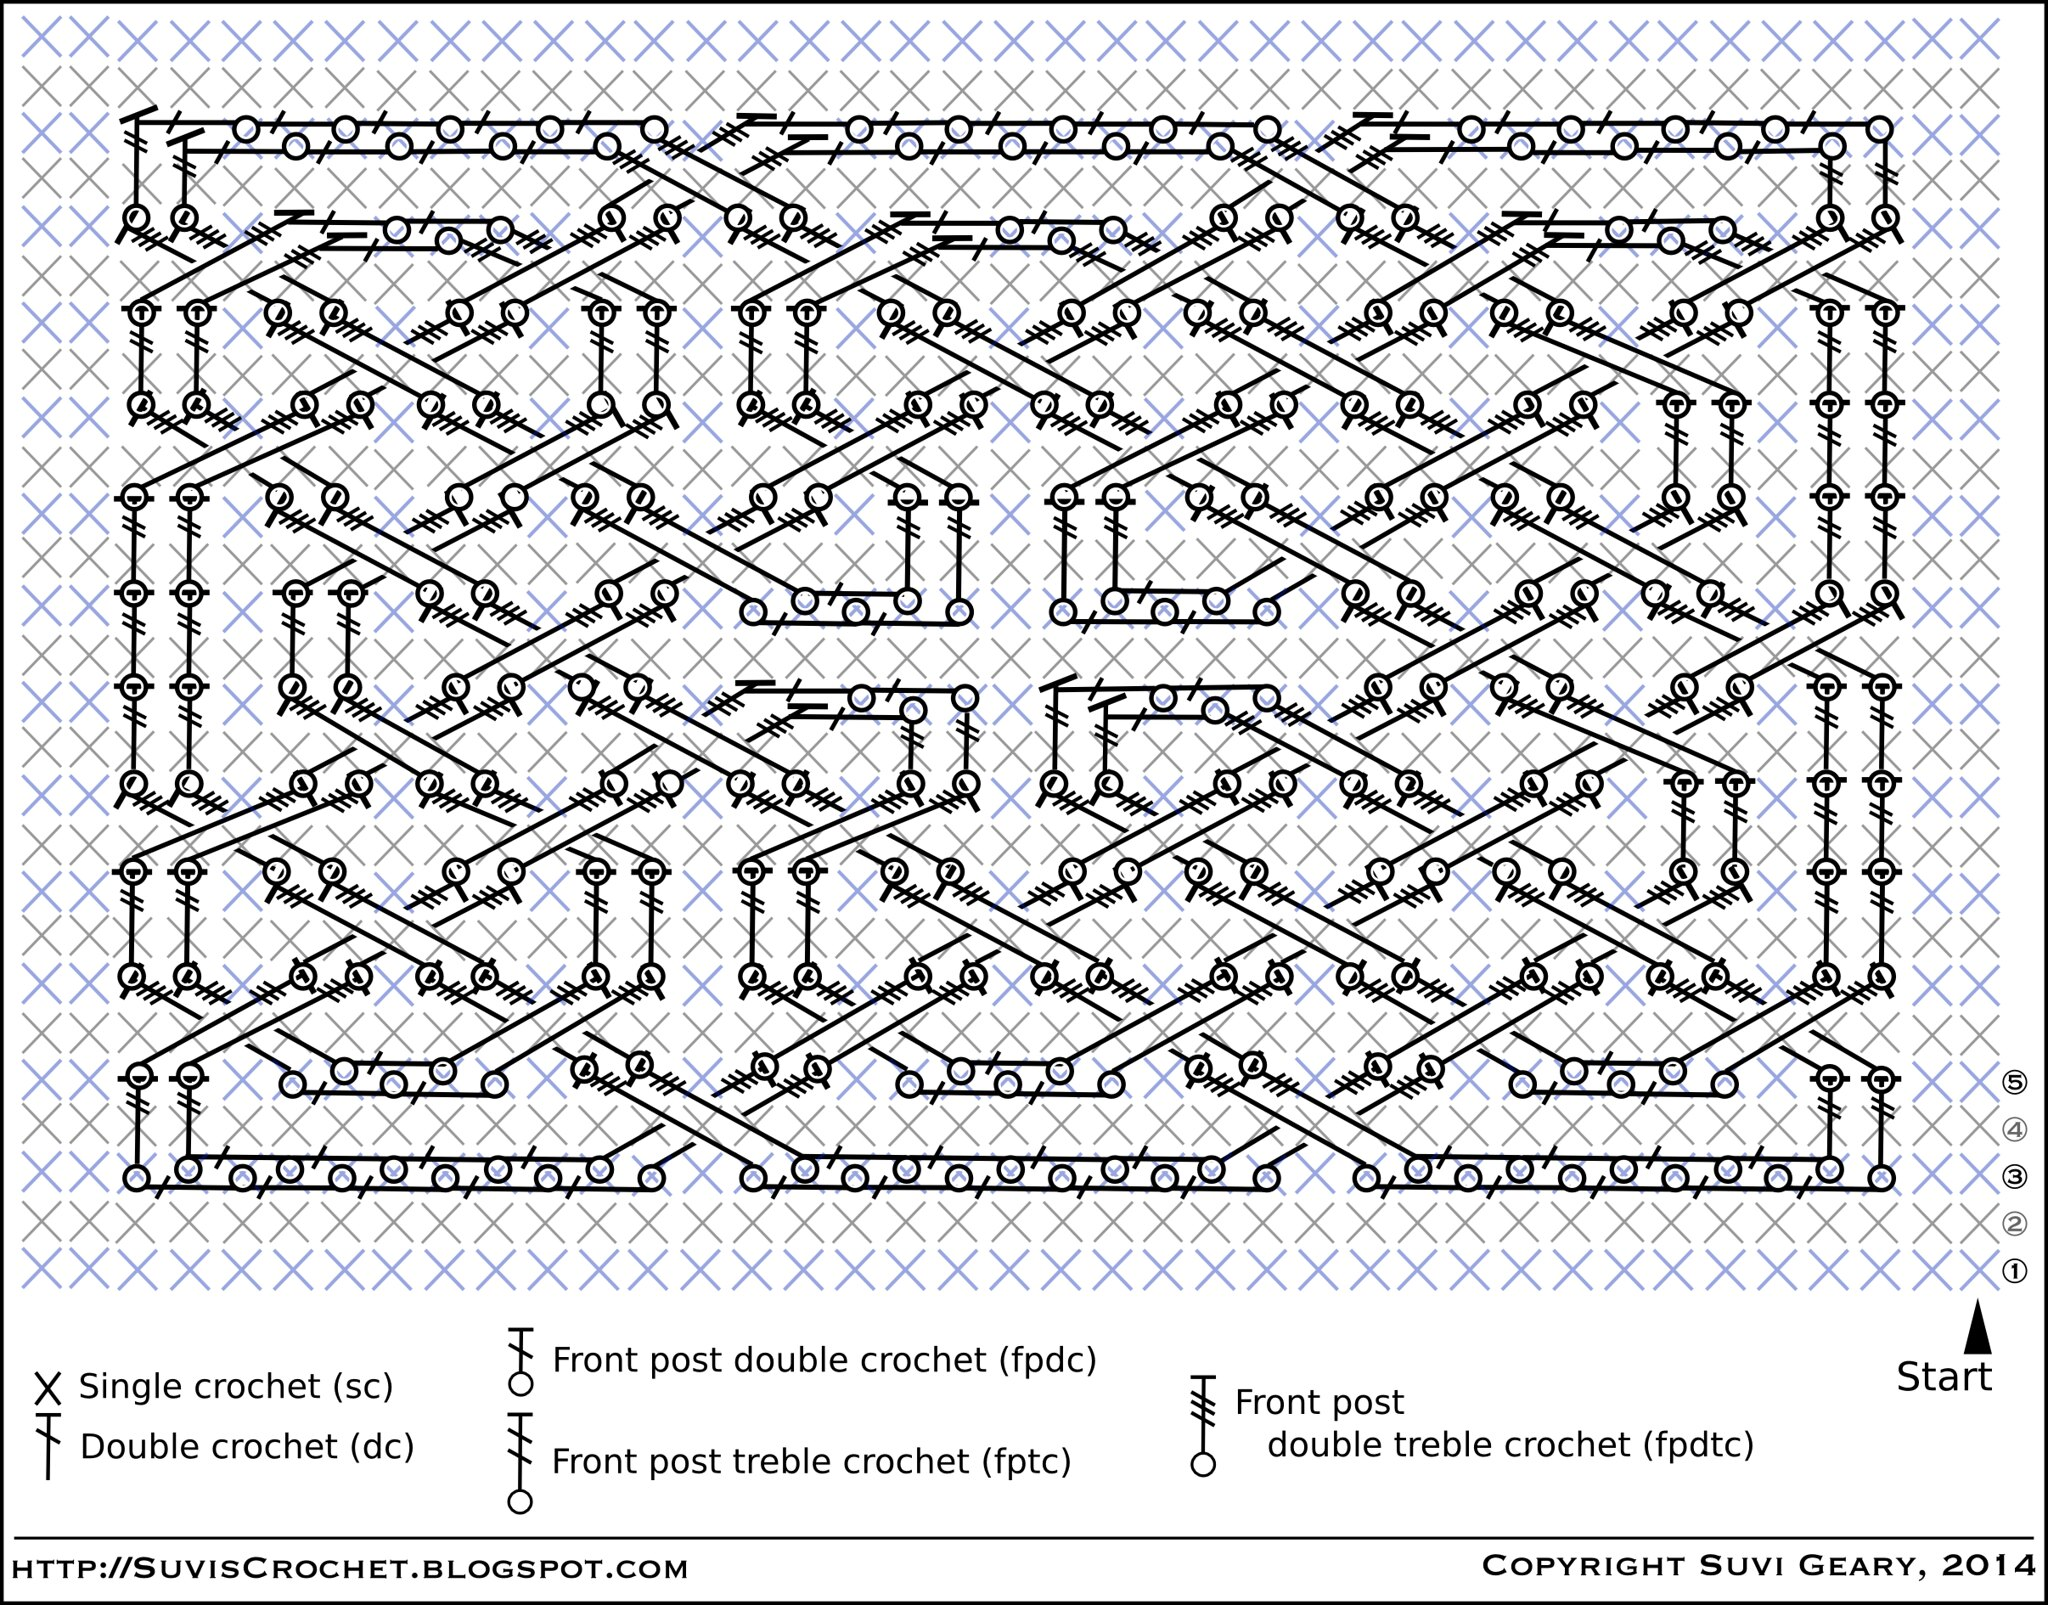 Howsanne Handmade Crochet Patterns Written Or Chart Snap Chain Stitch Diagram Squareone For Photos On Pinterest Suvi39s Book Of Kells Celtic Square Knot